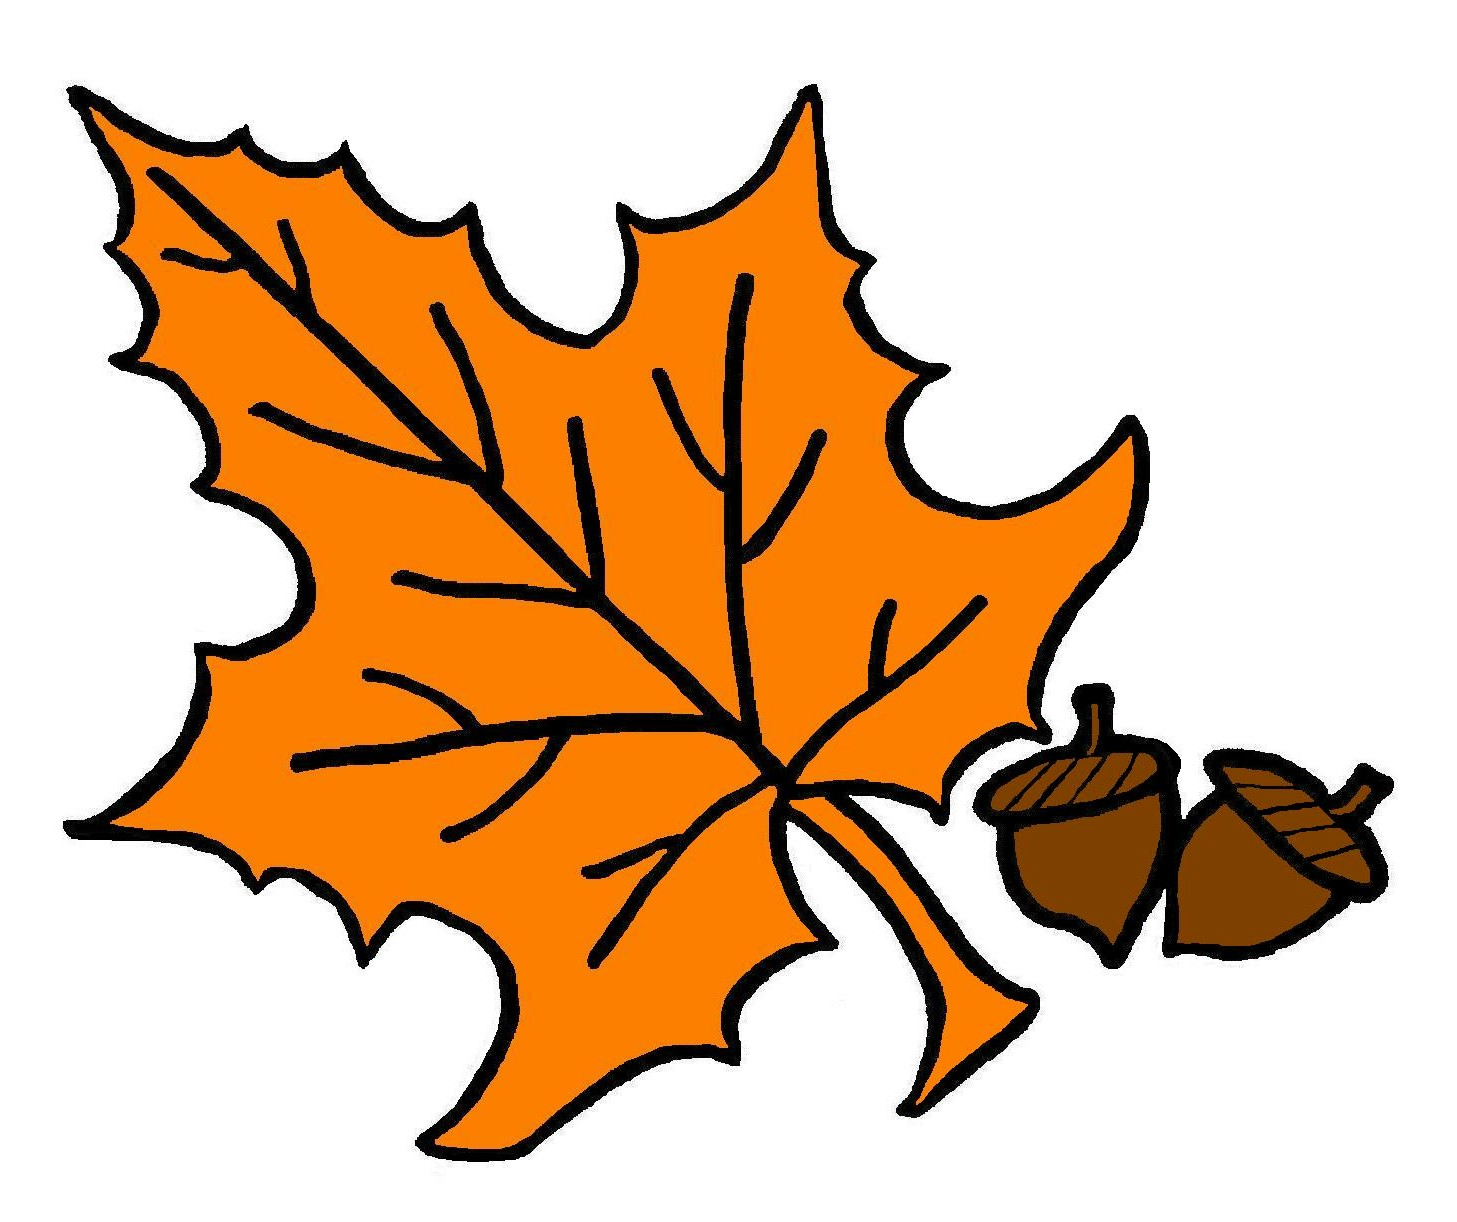 Autum clipart vector freeuse stock Fall leaves tree with autumn leaves illustrationlor clip art 2 ... vector freeuse stock